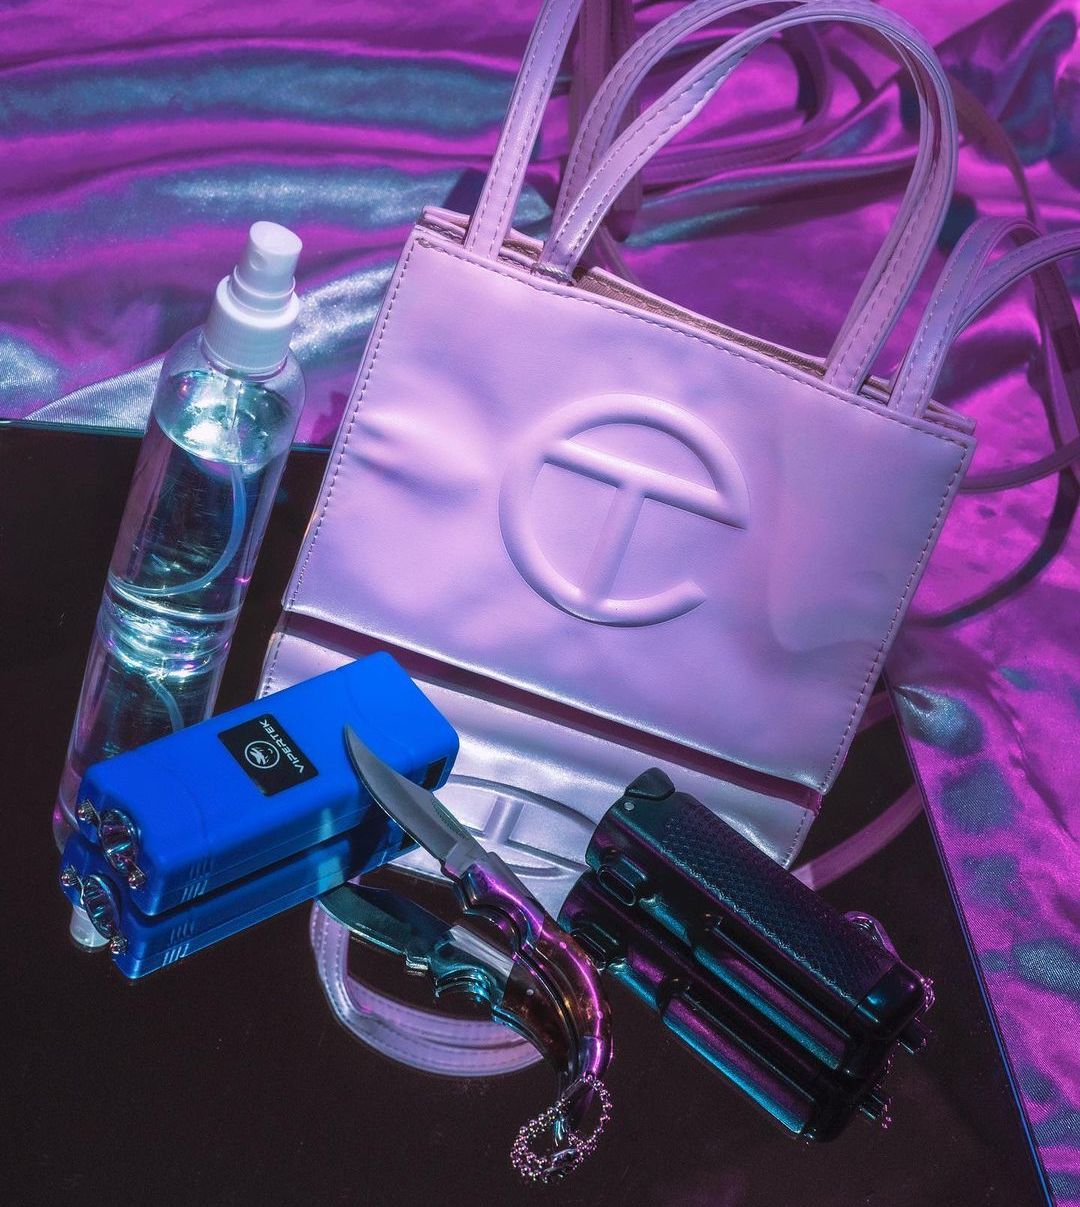 Self-defense items sit on a reflective table in front of a pink and blue background, including a bottle of pepper spray, a stun gun, a switchblade, and a white Telfar tote bag.